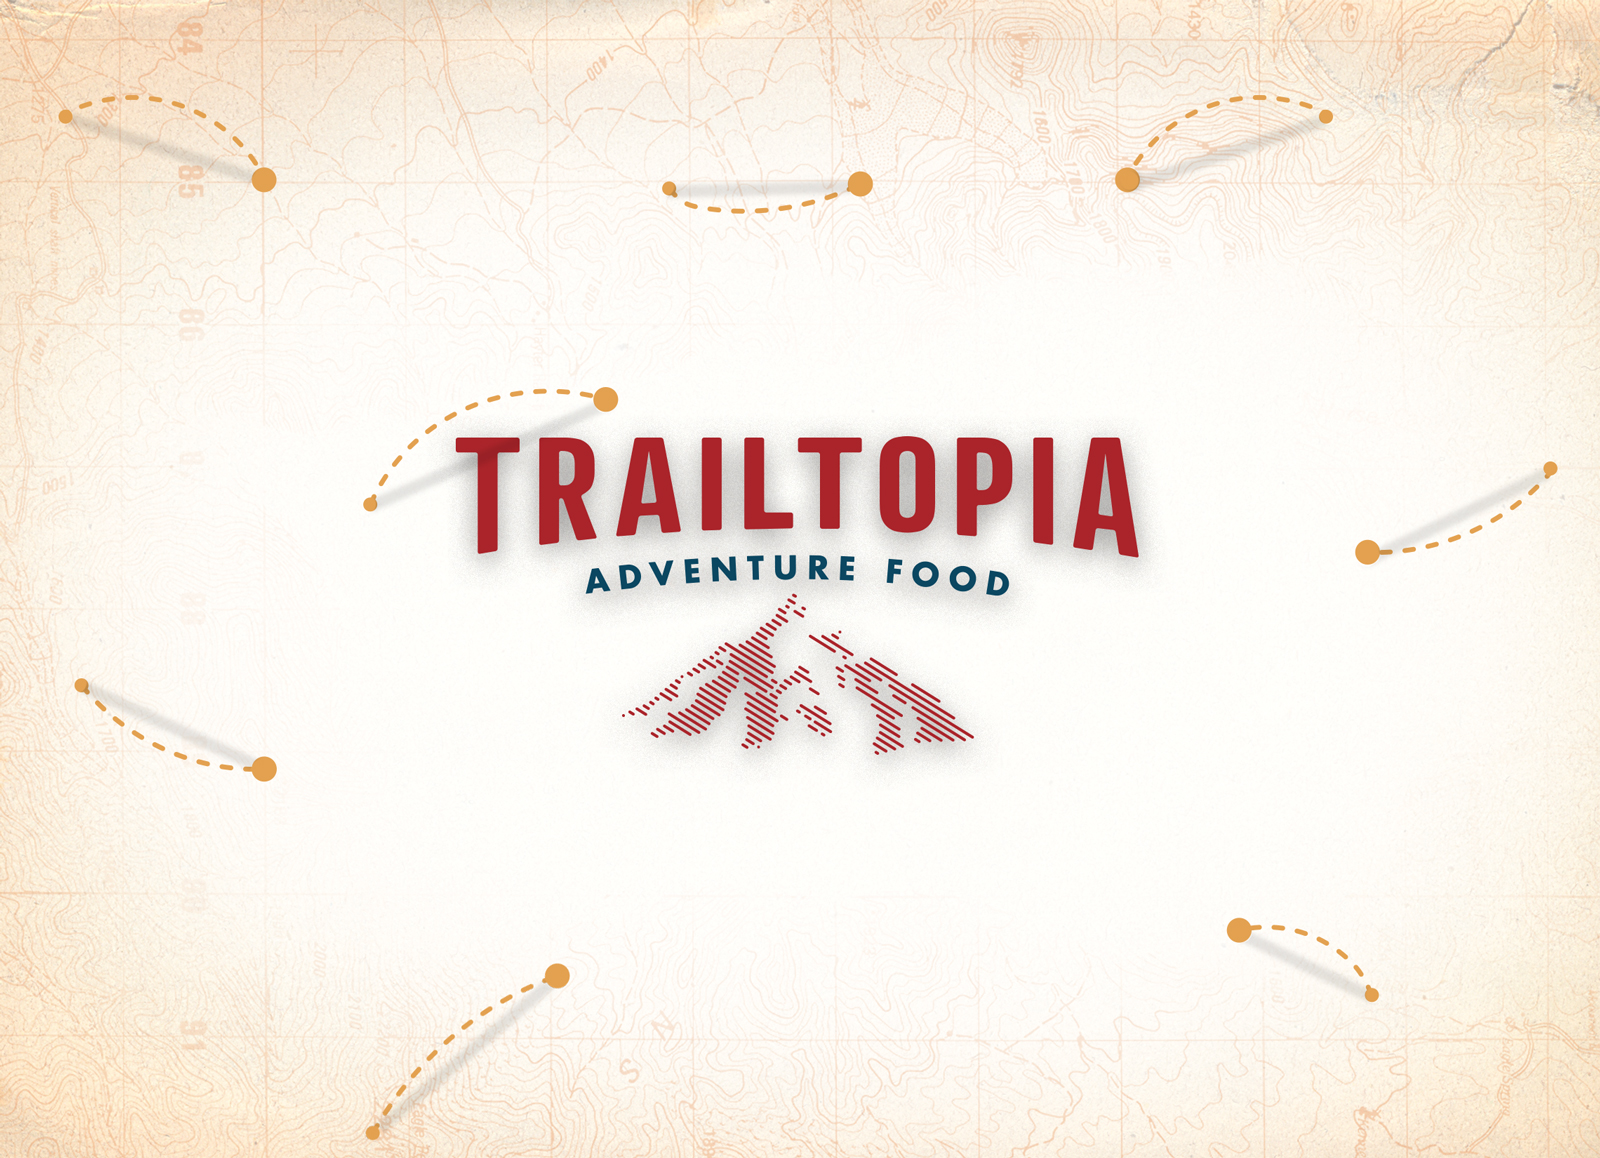 Trailtopia Adventure Food